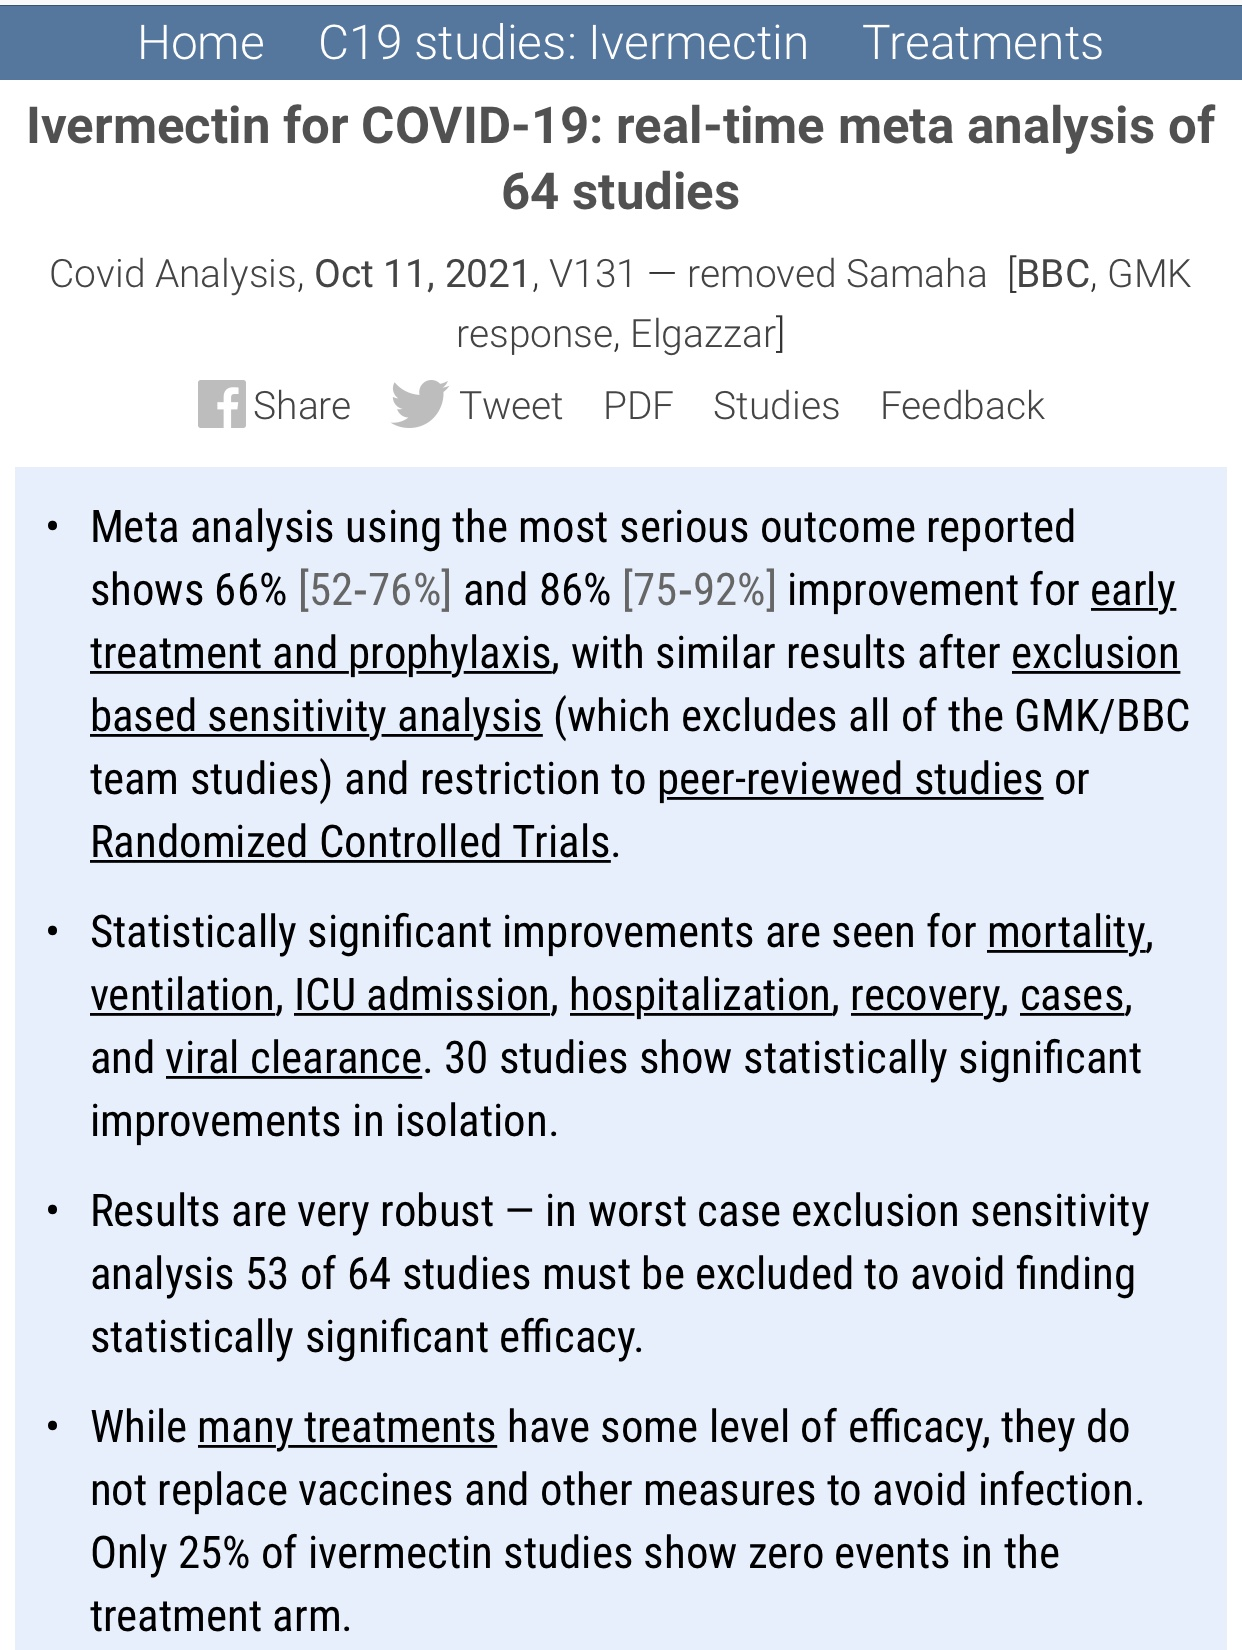 Ivermectin for Covid-19: Real Time Meta Analysis of 64 Studies